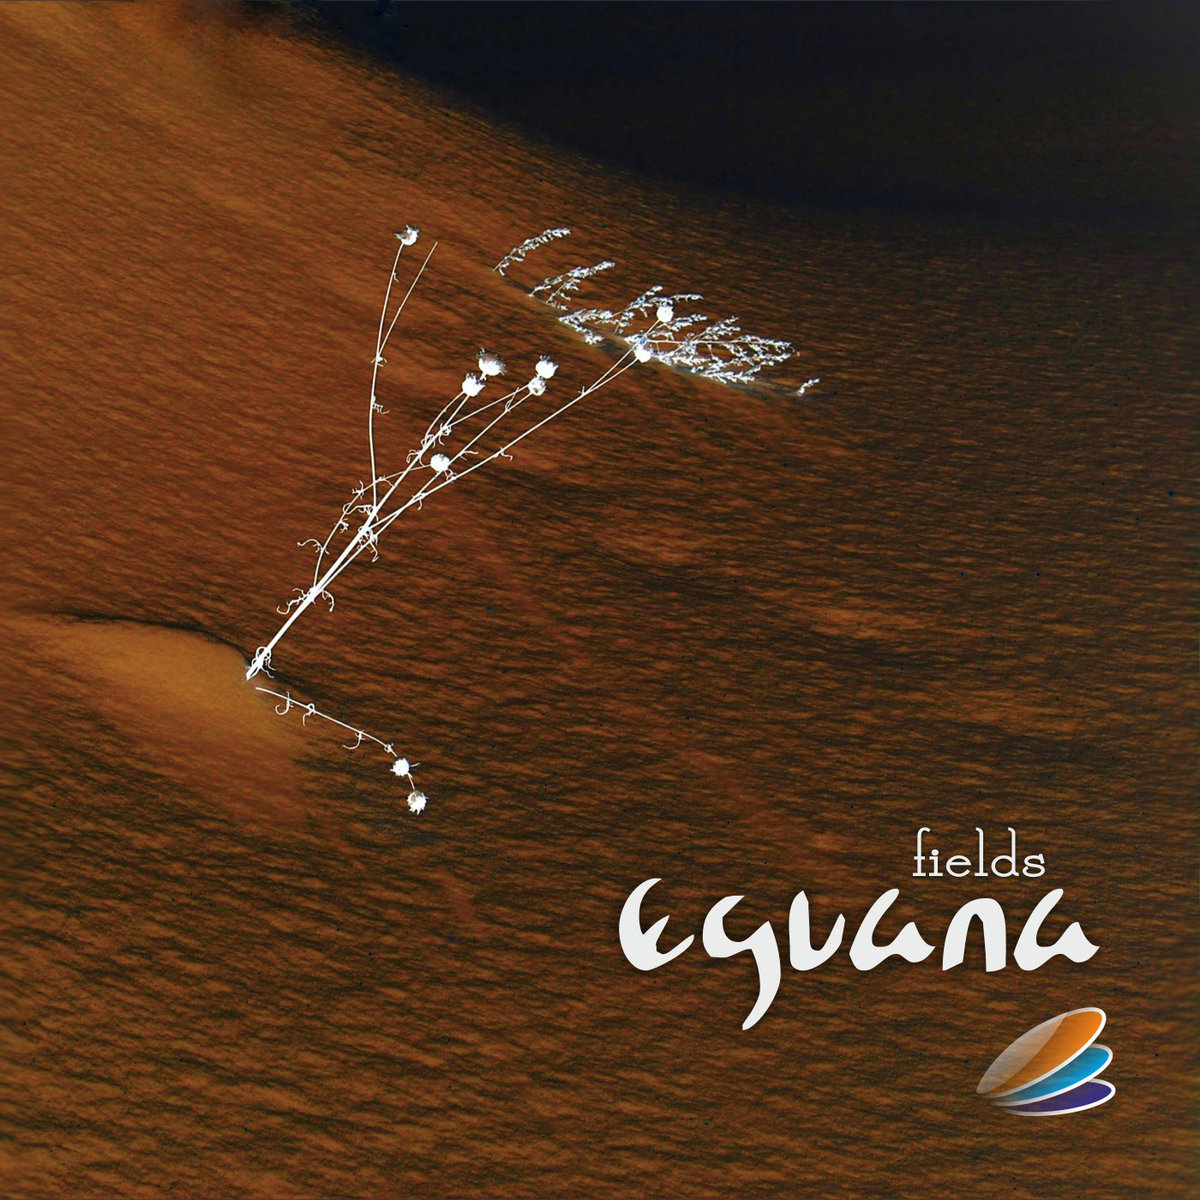 Eguana - Fields